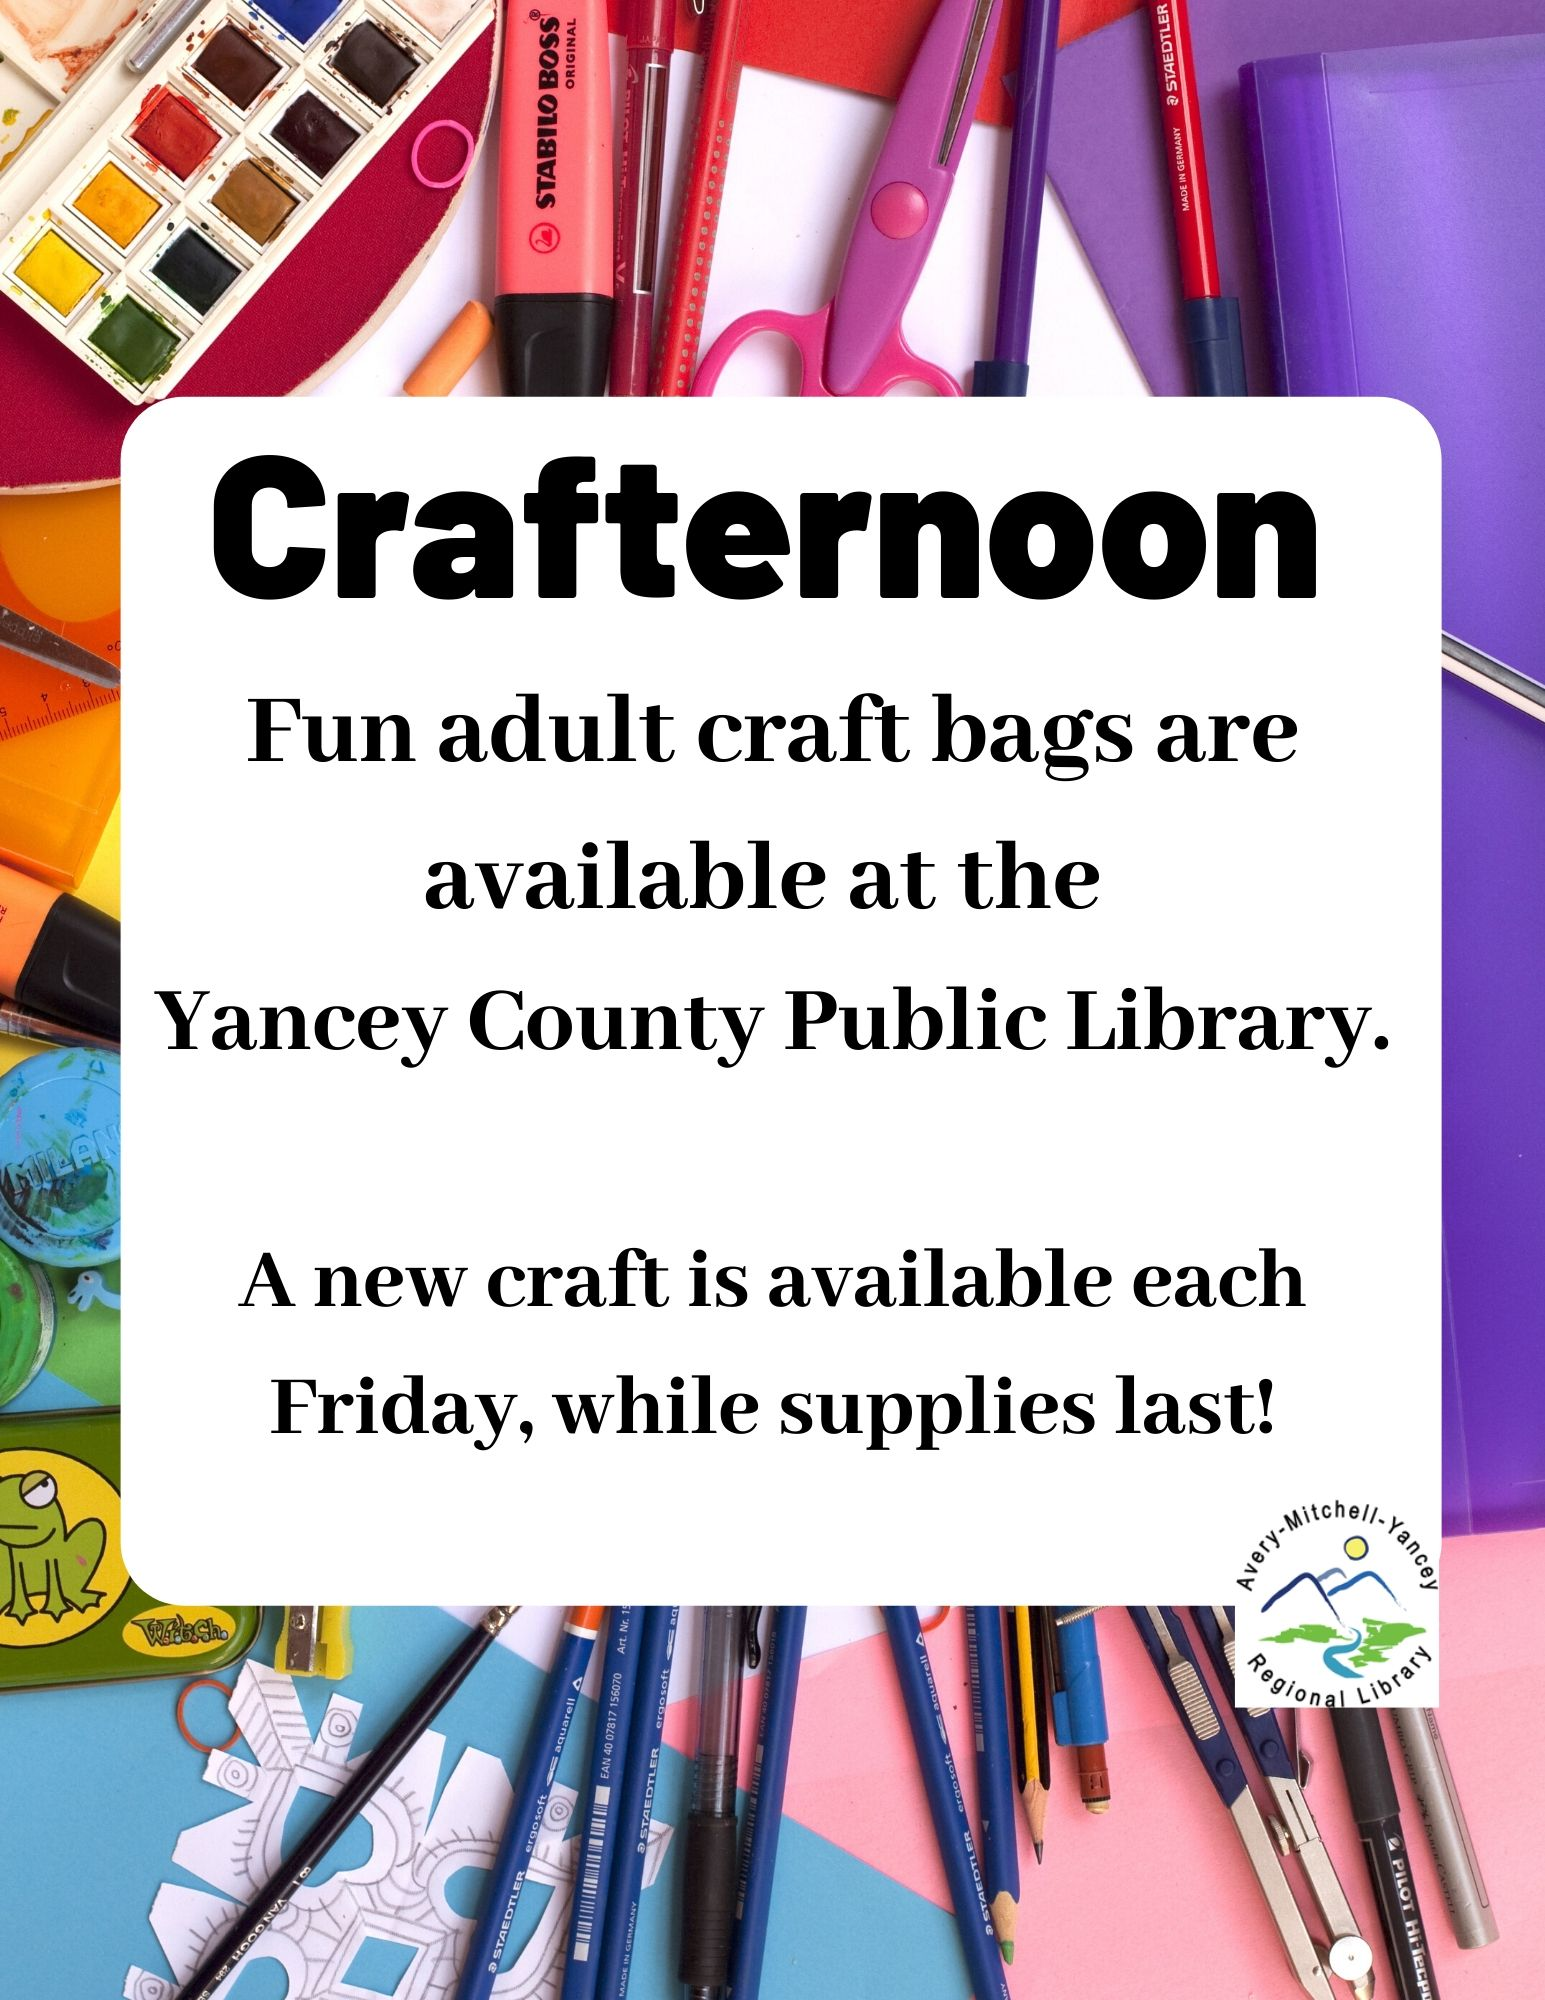 Yancey Library has Adult Crafternoon bags ready for pick-up on Fridays!